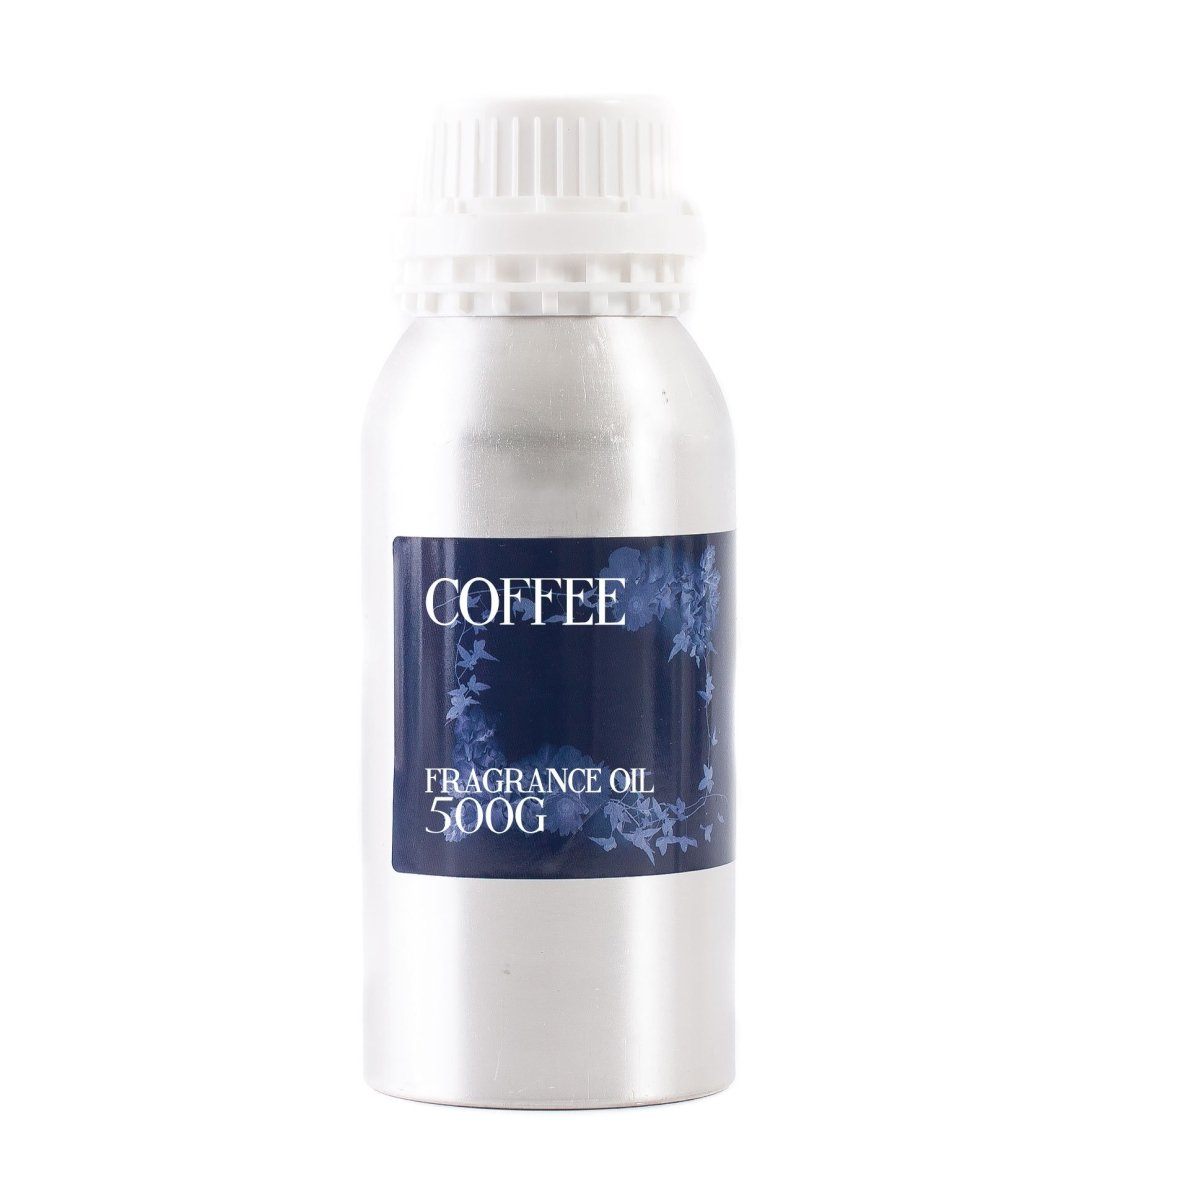 Coffee Fragrance Oil - Mystic Moments UK